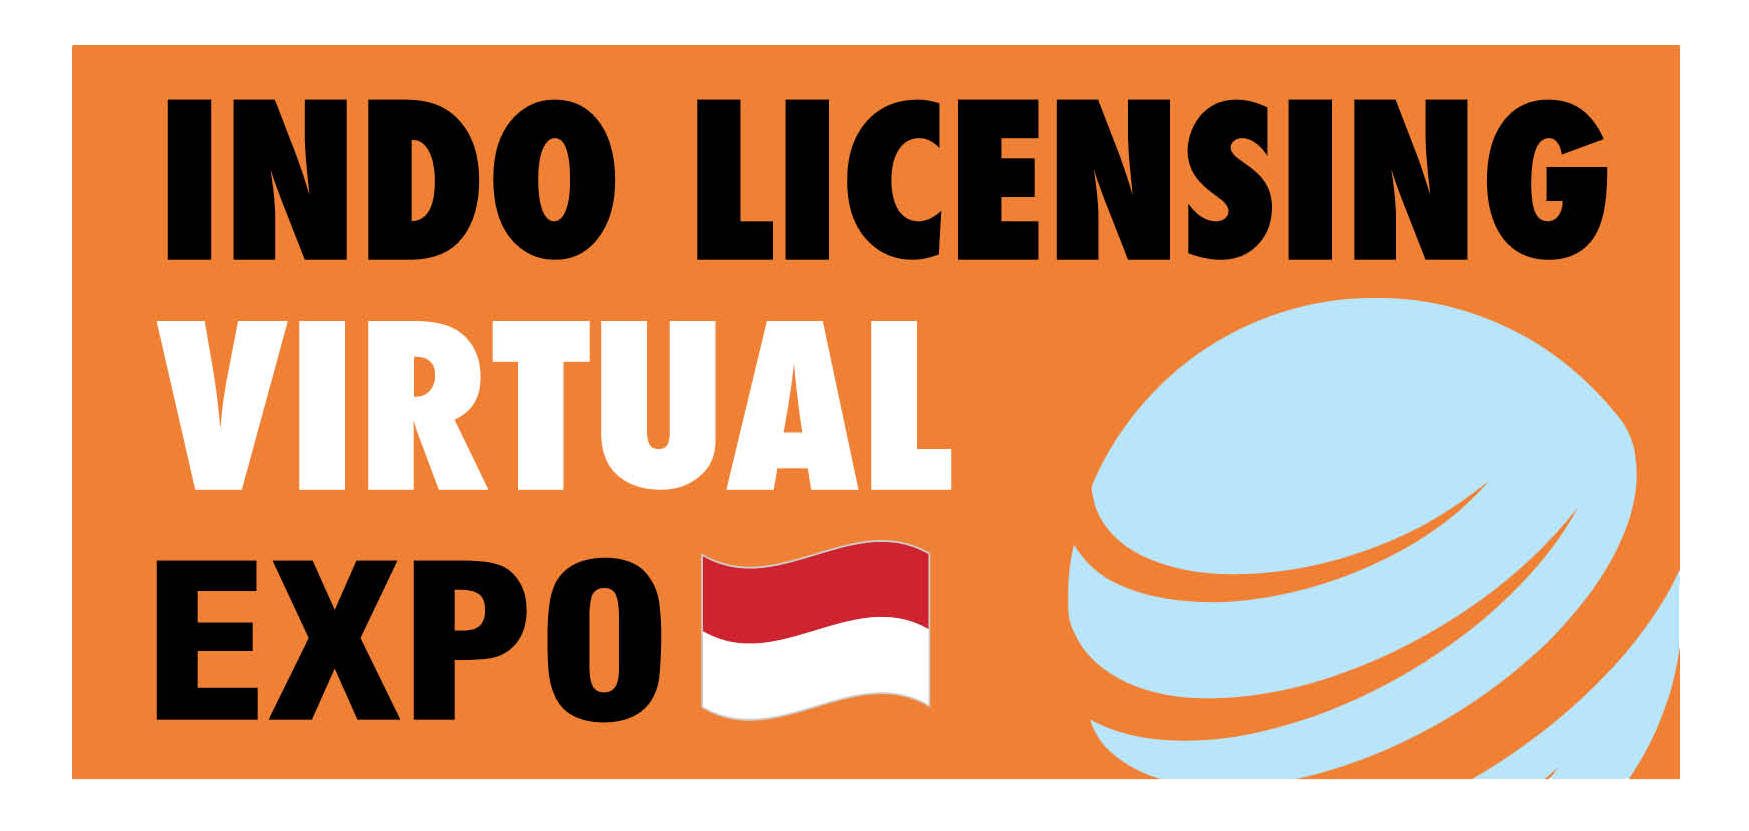 INDO LICENSING VIRTUAL EXPO 2020